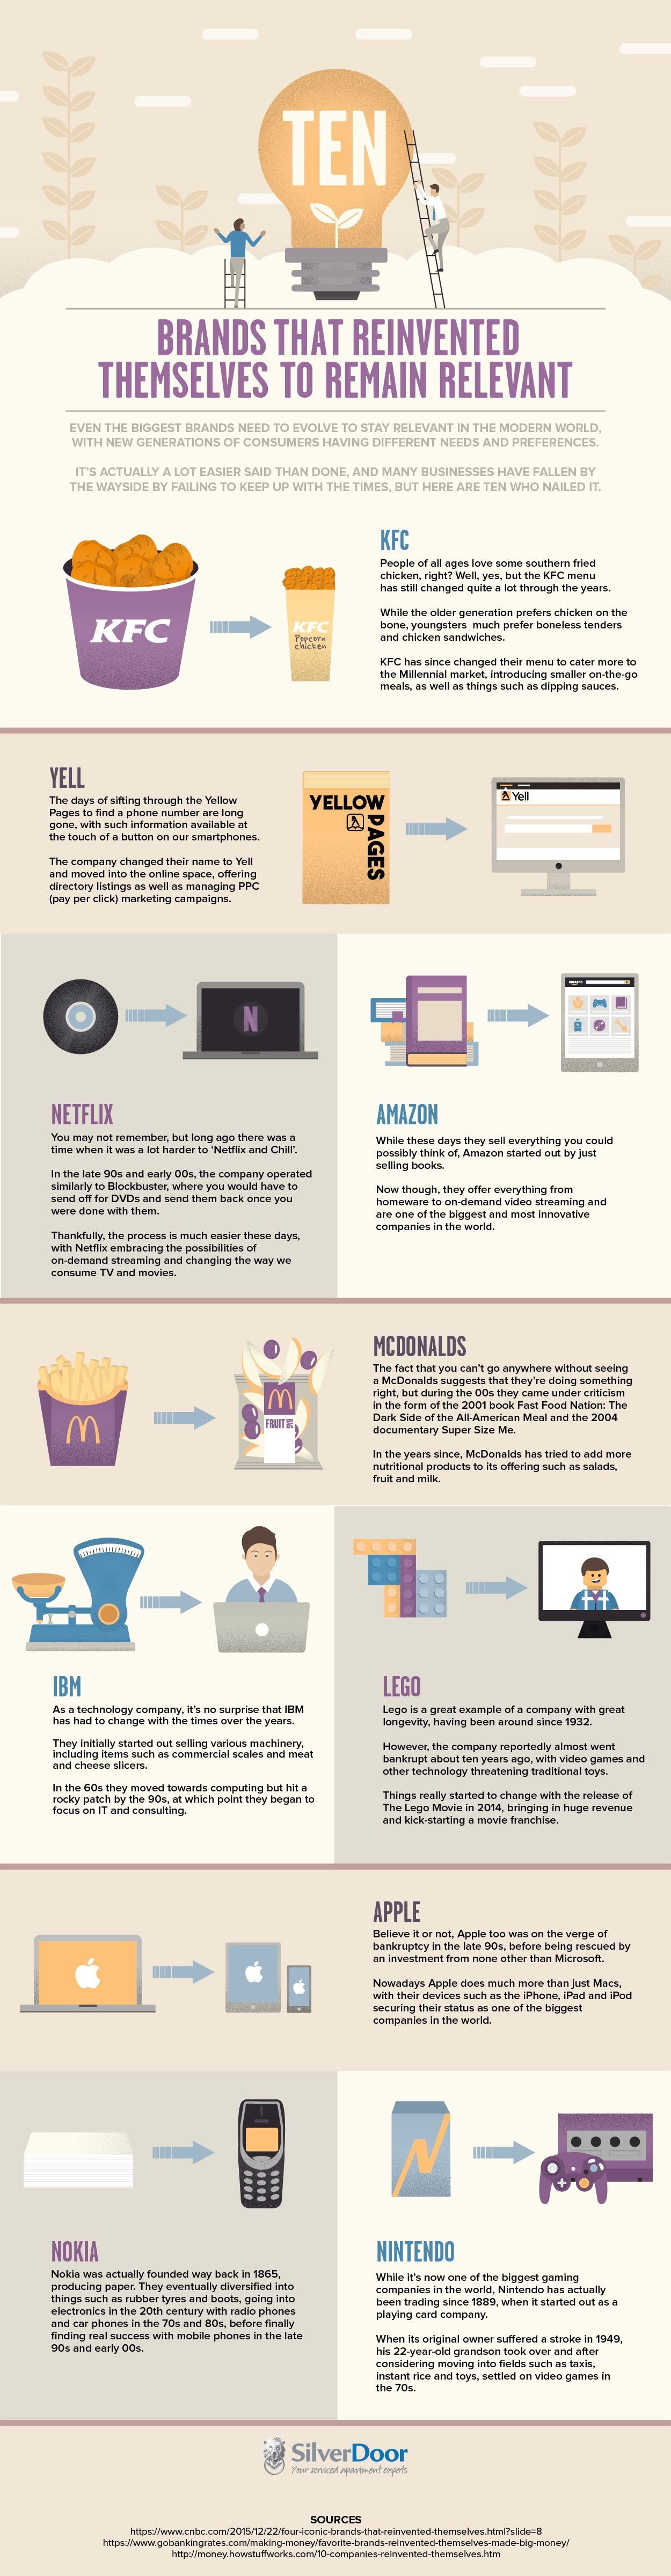 10 Brands Who Reinvented Themselves To Remain Relevant - #Infographic